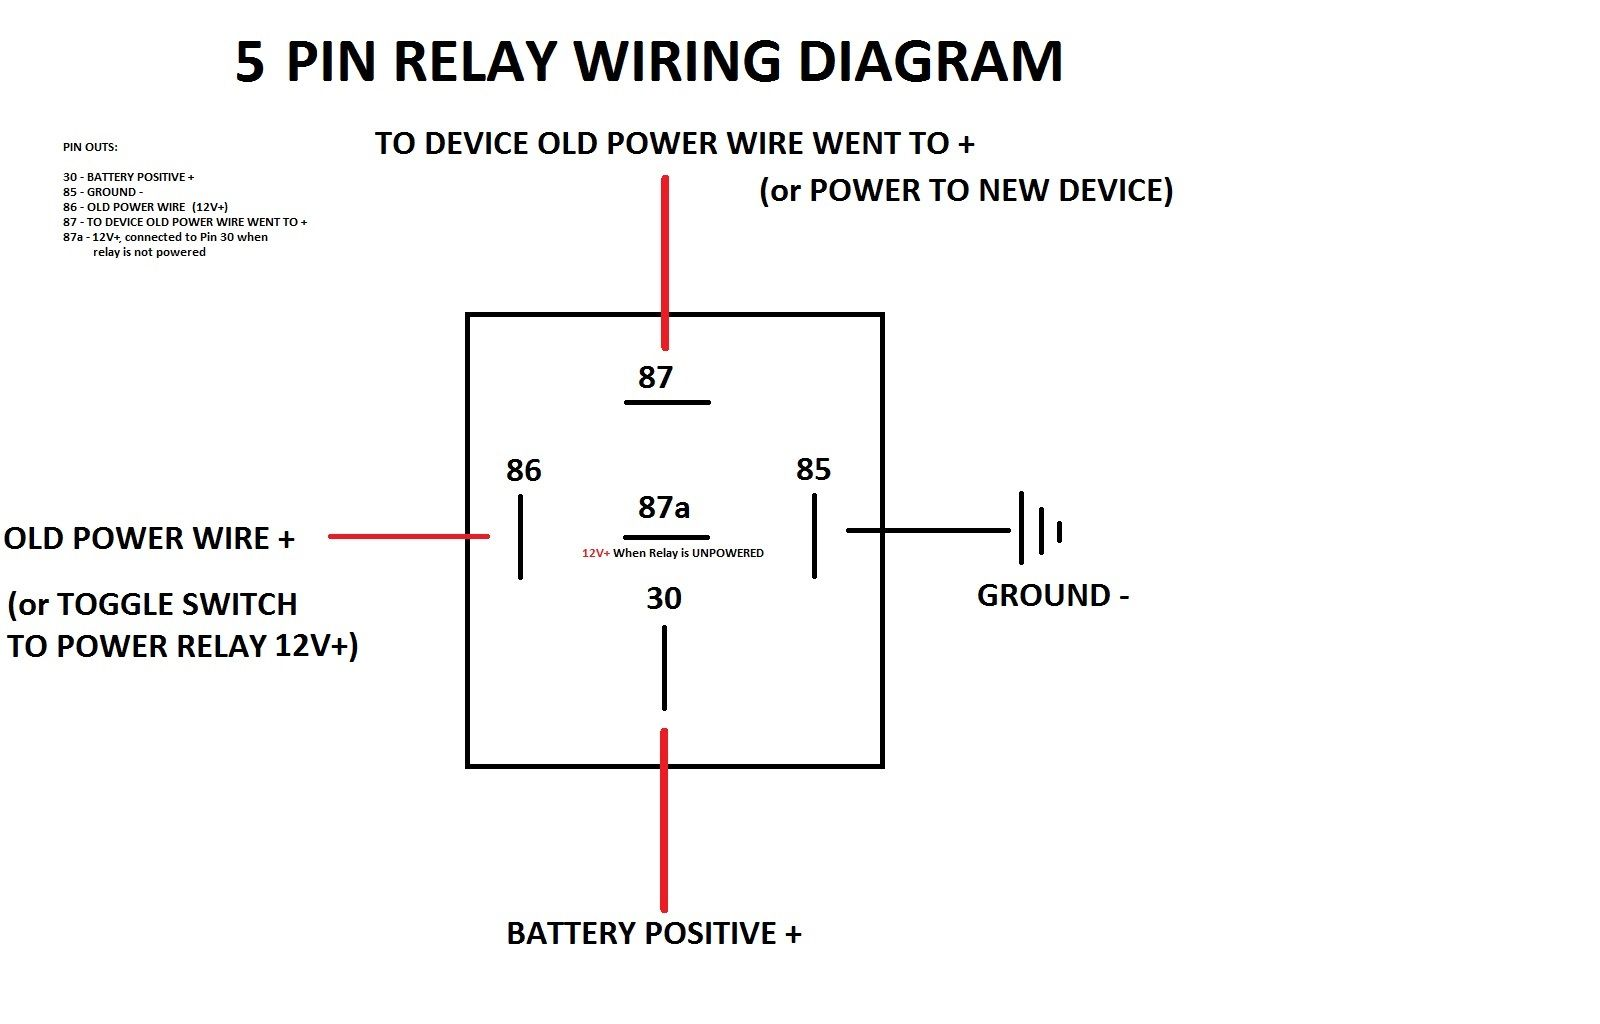 simple 5 pin relay diagram dsmtuners diagram, circuit ignition switch wire diagram power window switch 5 wire diagram #14